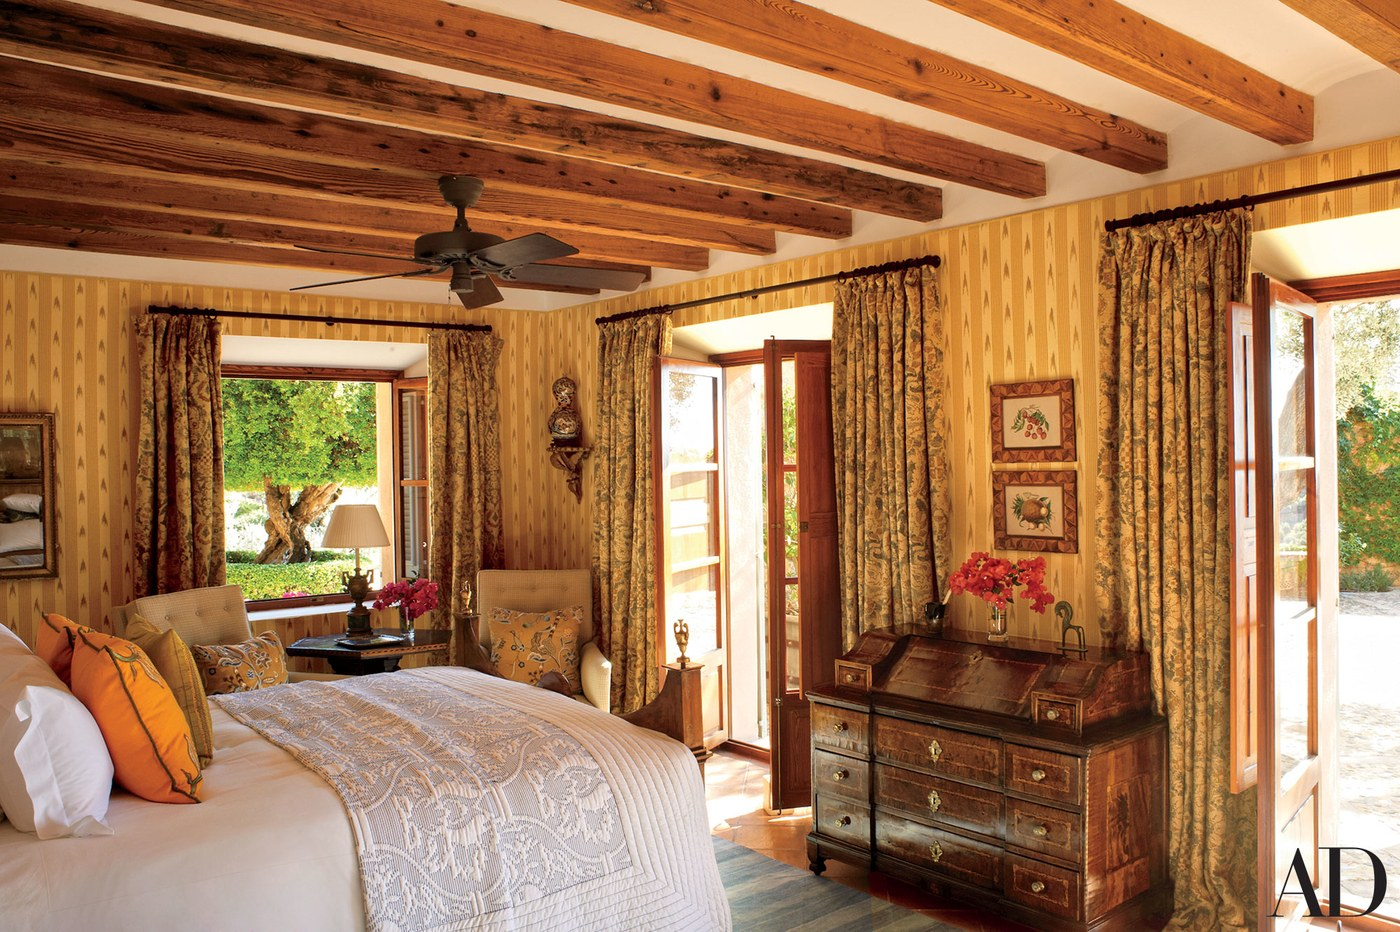 timber-frame-beams-bedroom